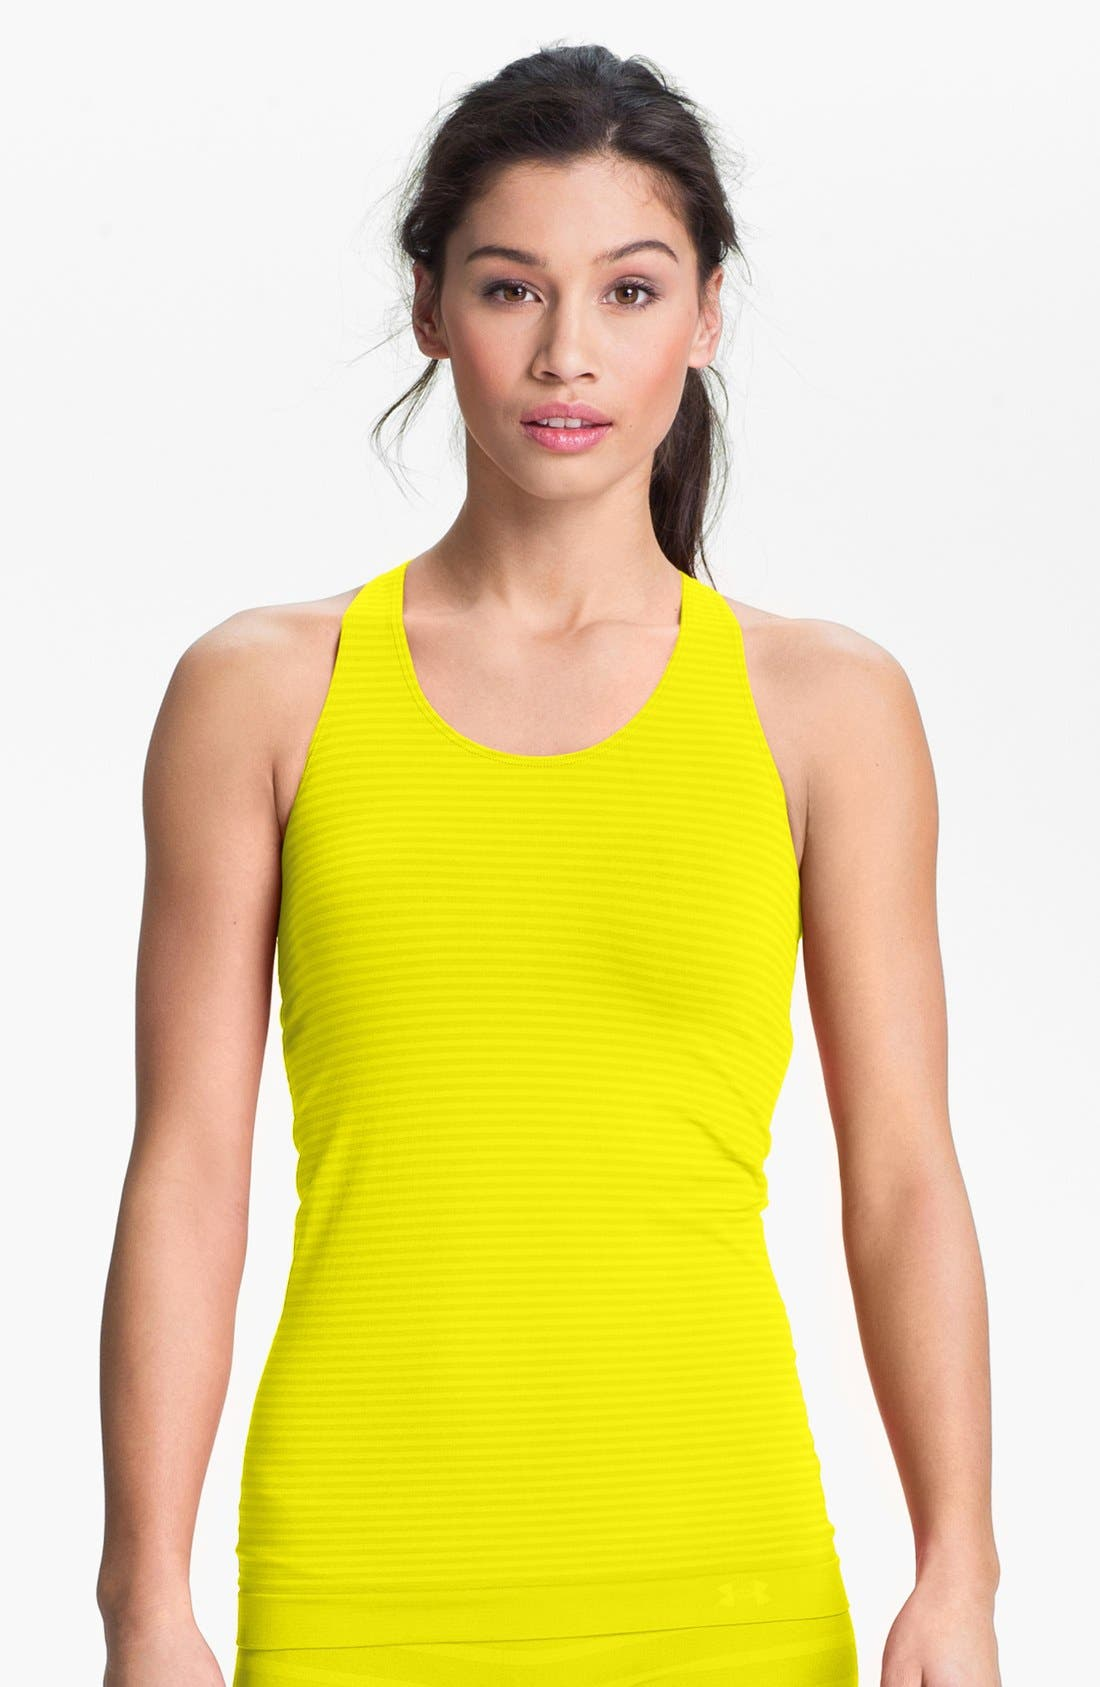 Alternate Image 1 Selected - Under Armour 'O Series' HeatGear Seamless Tank